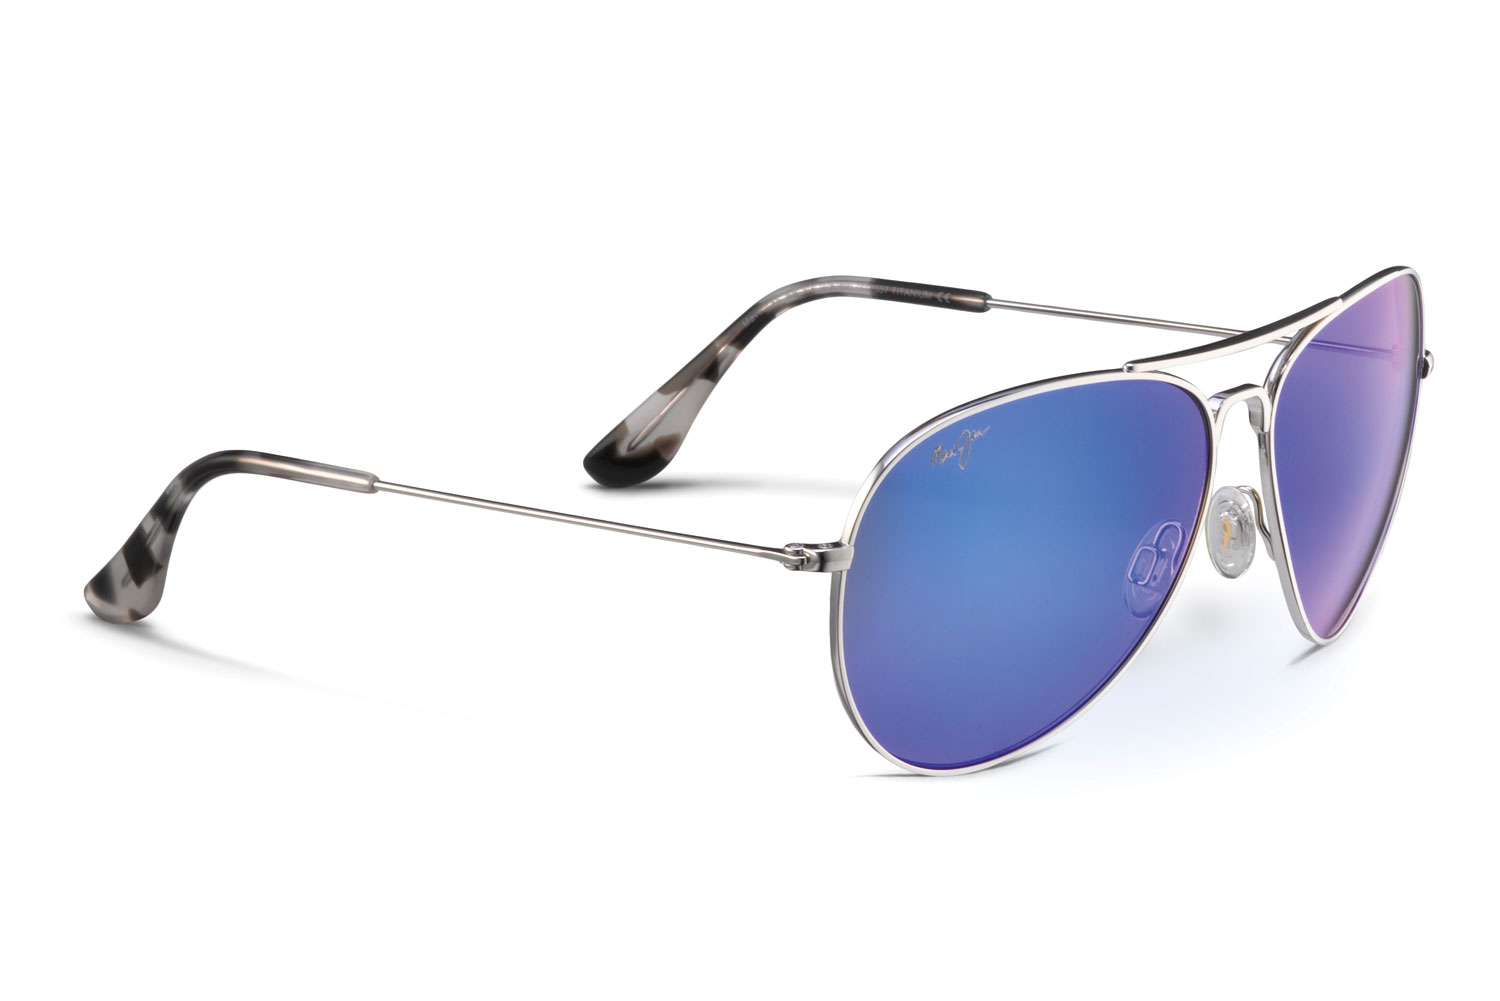 Maui jim aviator polarized sunglasses for Maui jim fishing glasses